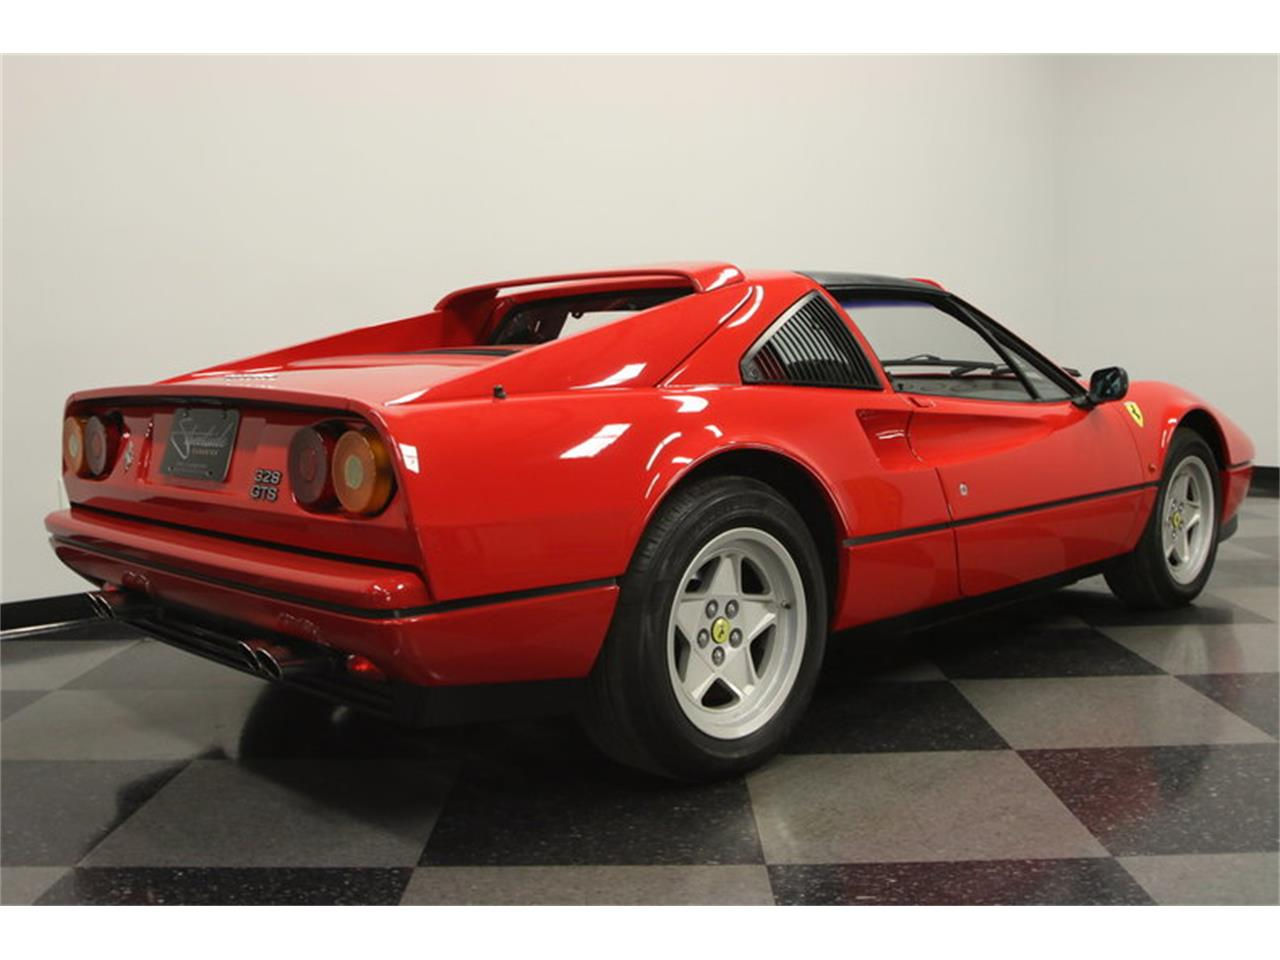 Large Picture of '88 328 GTS located in Lutz Florida - $69,995.00 Offered by Streetside Classics - Tampa - MO3Z